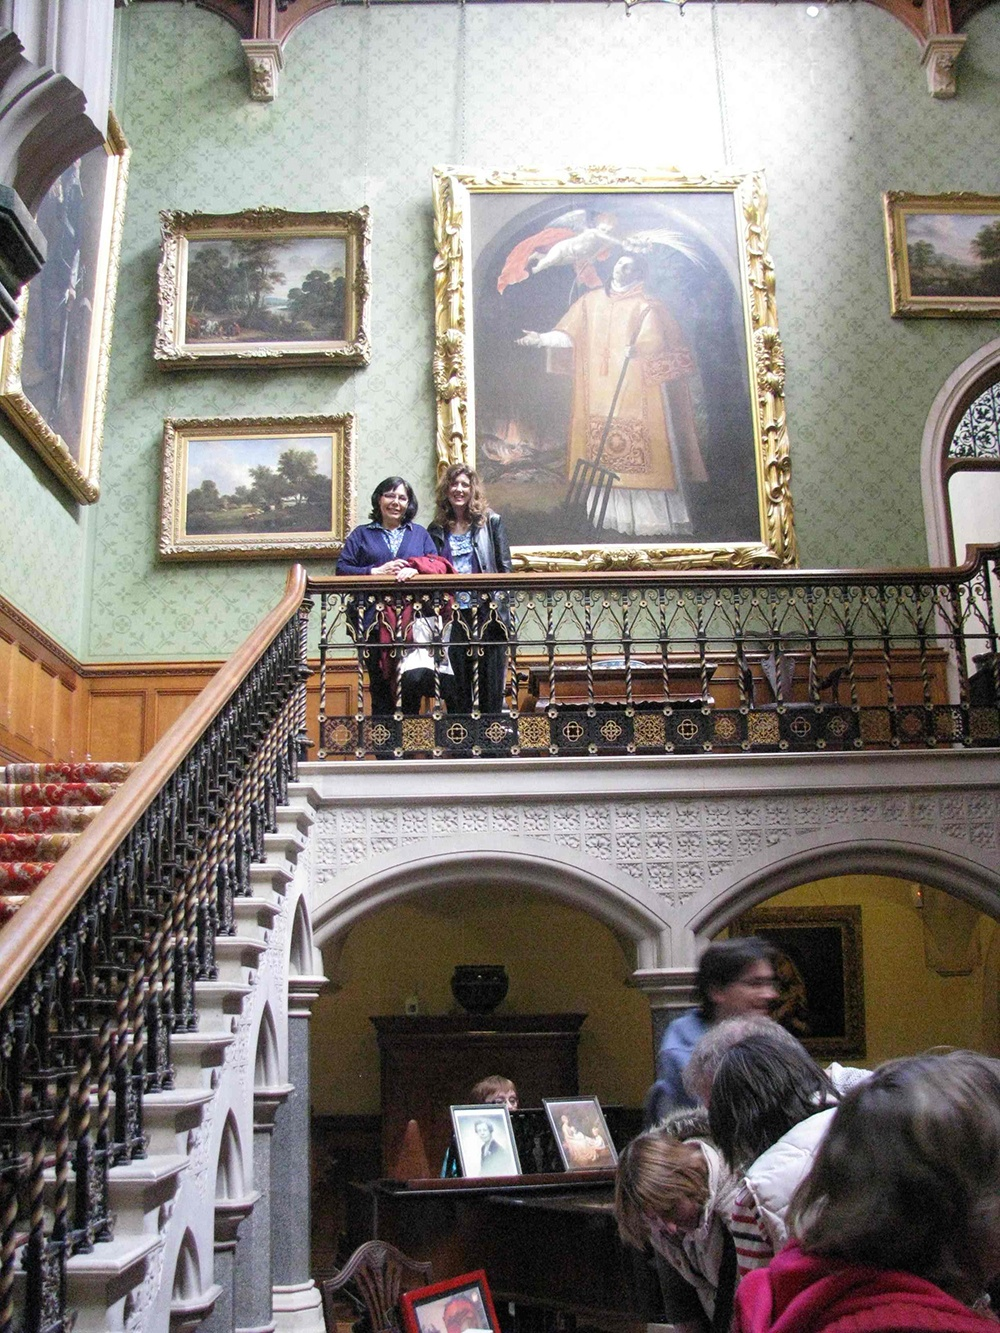 Melanie Dobson and Carrie in the gallery of the great hall